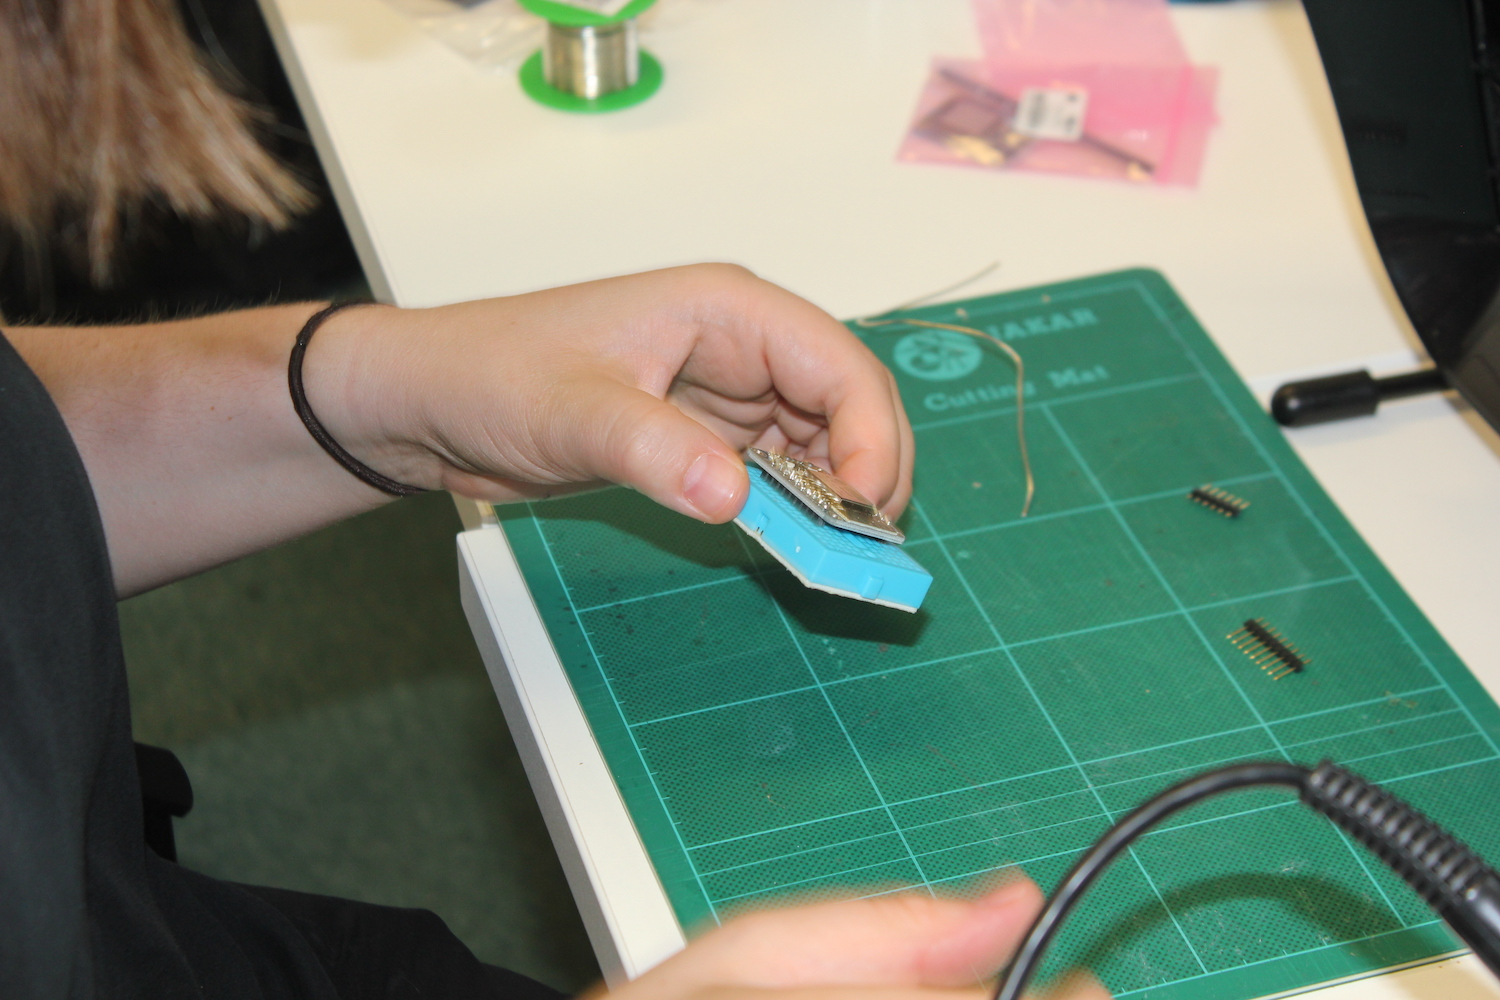 A researcher holds a small breadboard containing the Adafruit Huzzah ESP8266 Breakout to pin headers in one hand as she prepares to solder